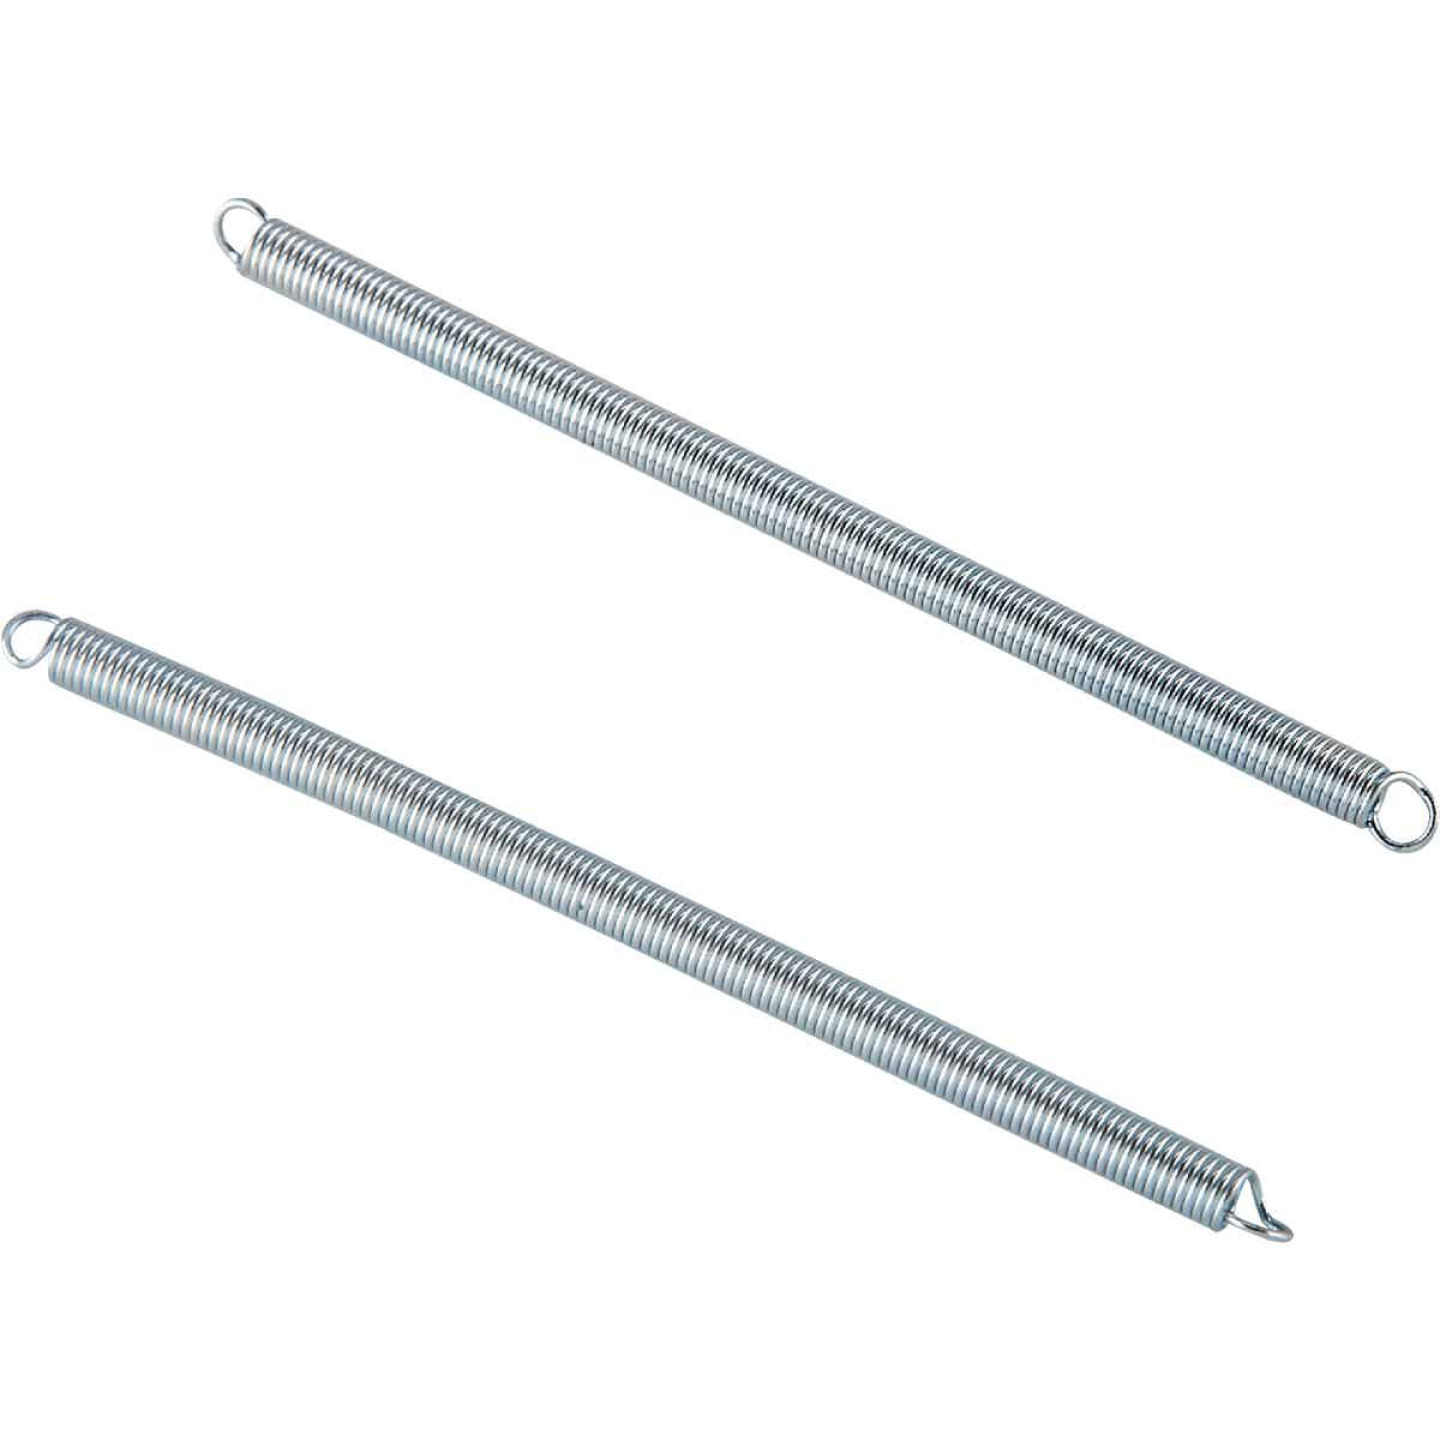 Century Spring 6 In. x 7/8 In. Extension Spring (1 Count) Image 1